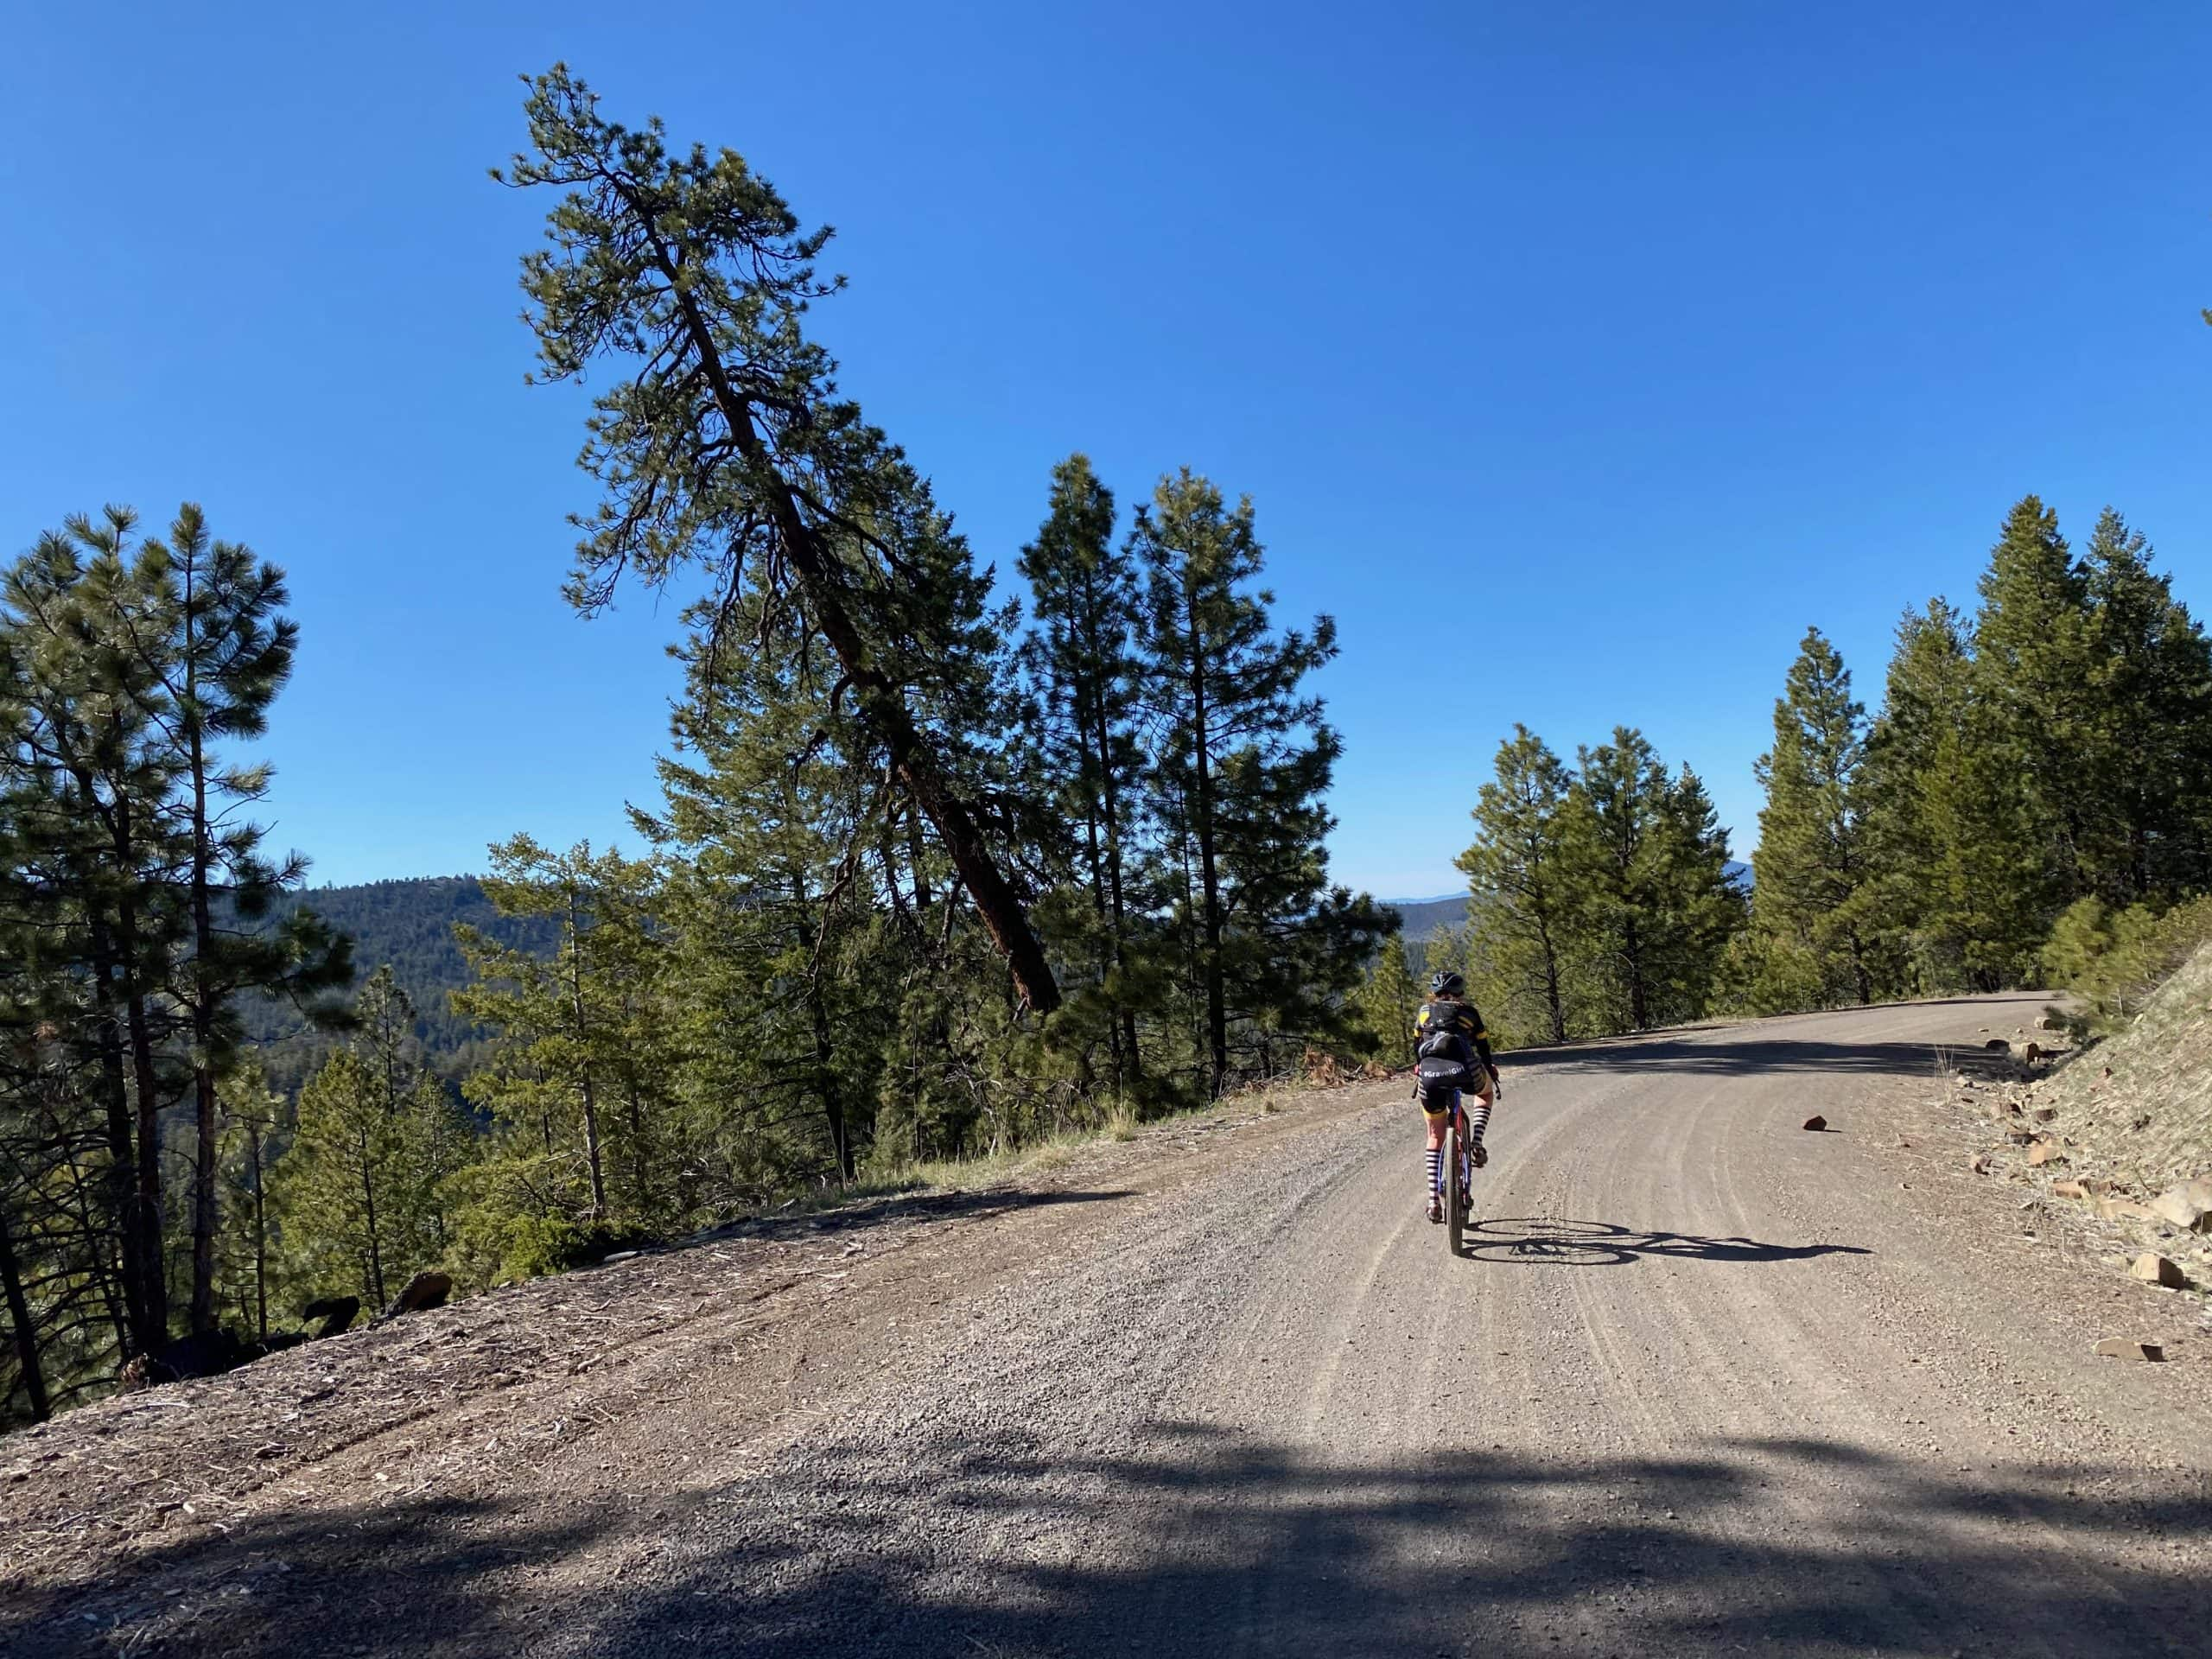 Gravel Girl descending NF-16 in the Maury mountains of Central Oregon.